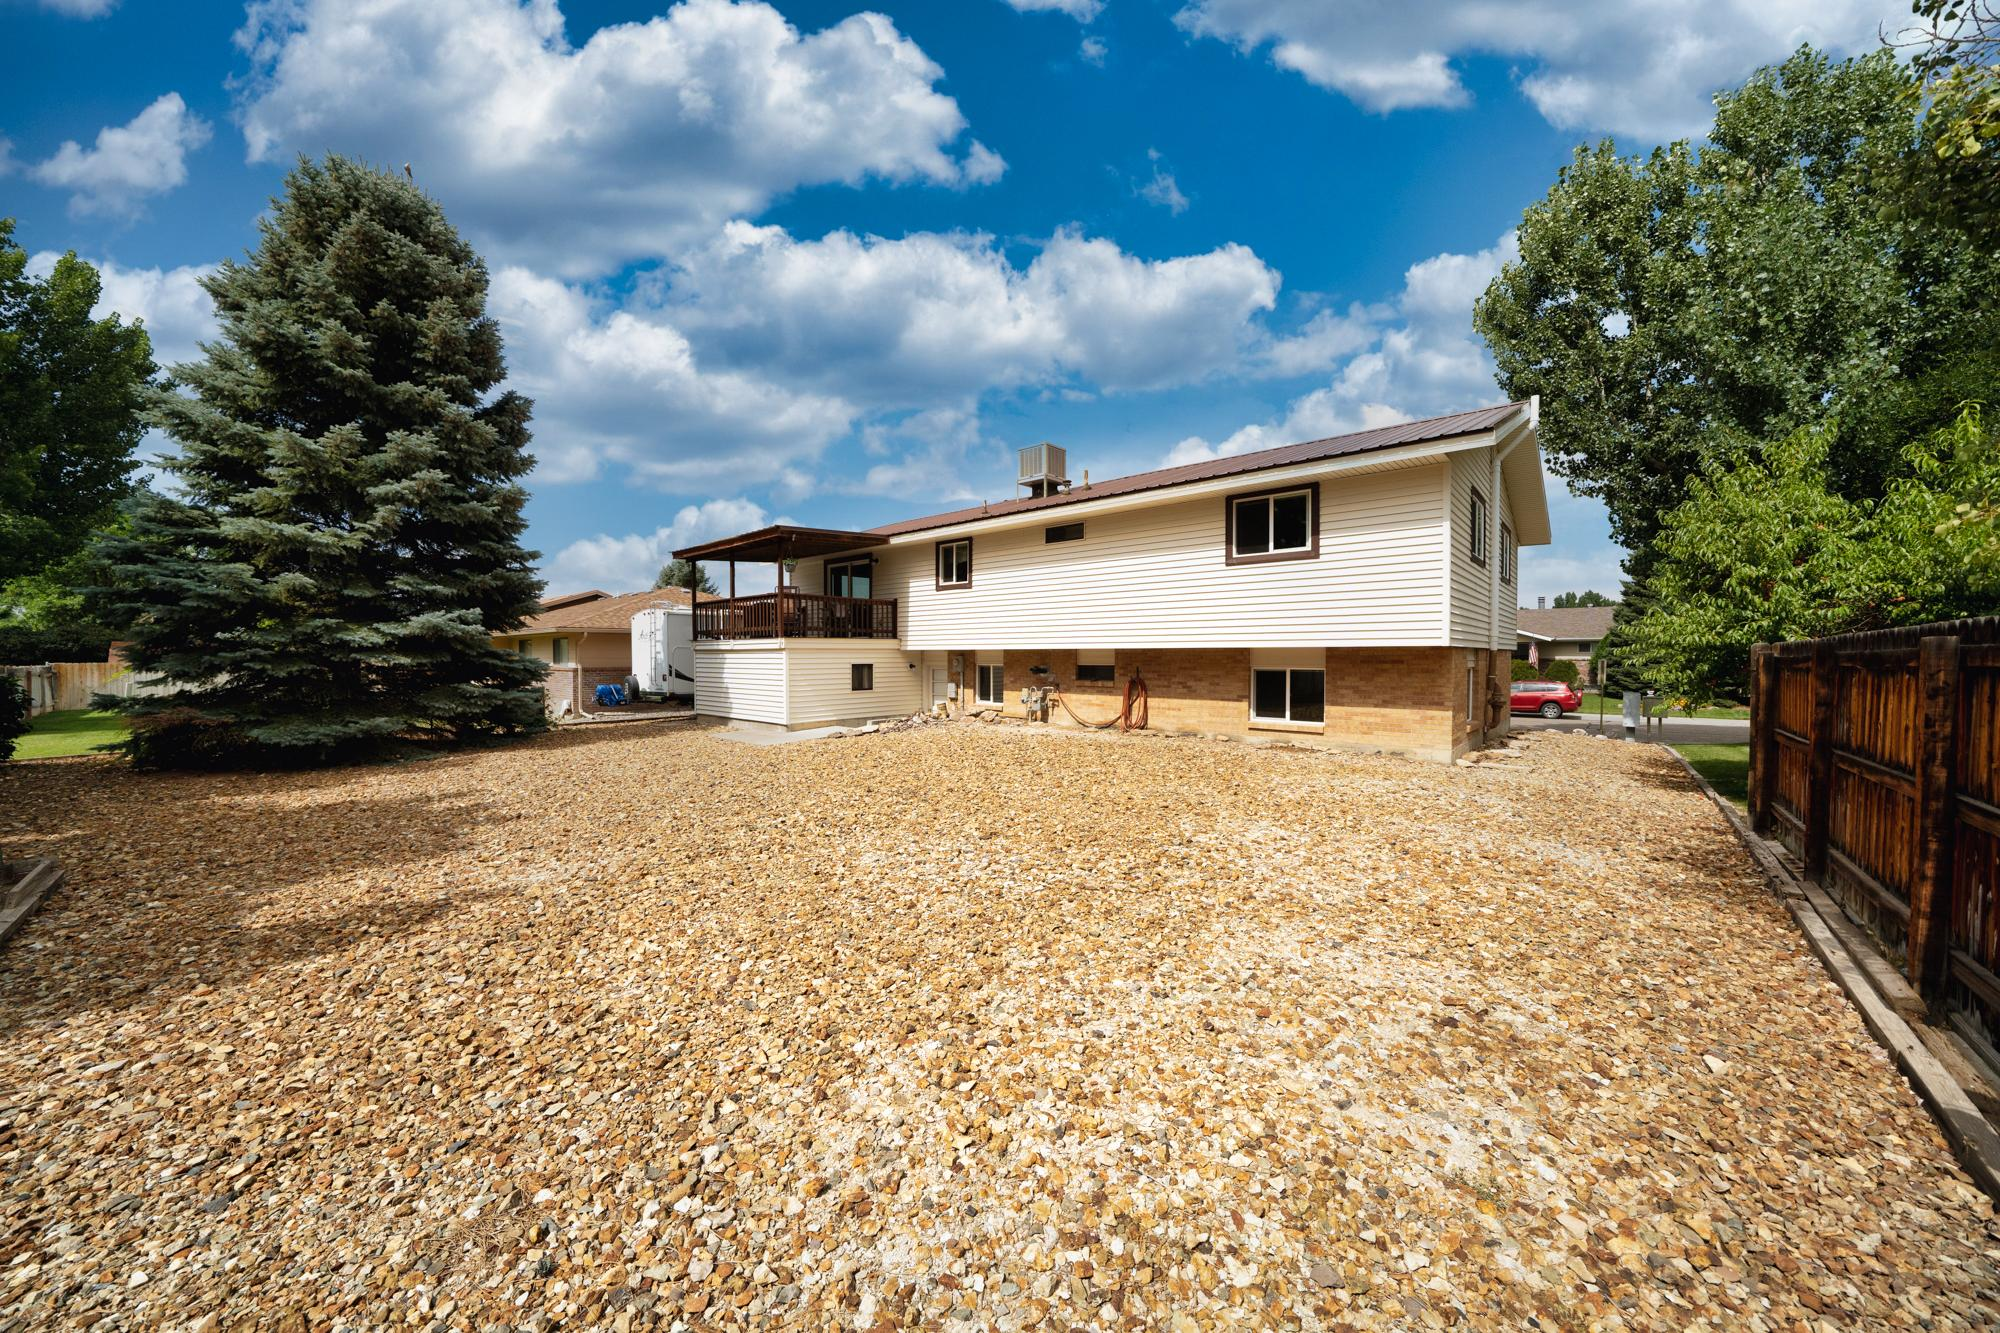 Large Back Yard - 1311 Manchester Dr Montrose, CO 81401 - Atha Team Realty Agents